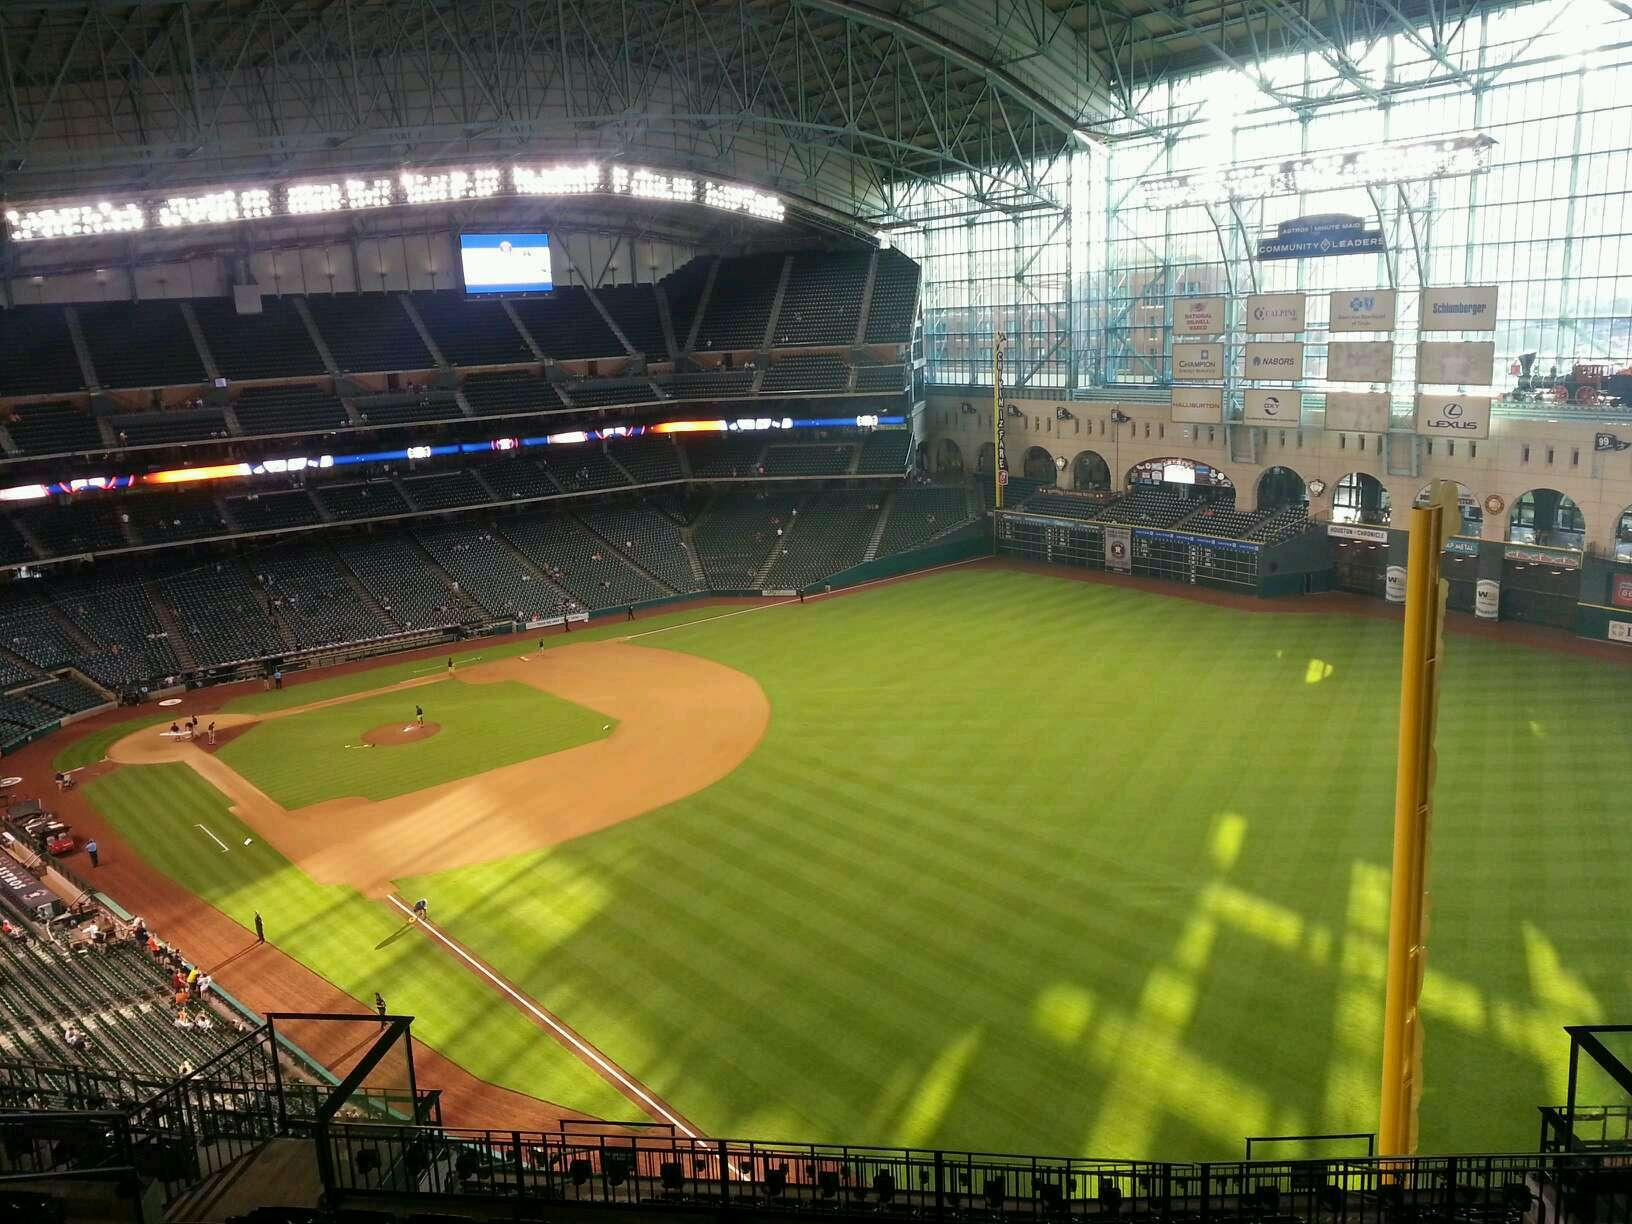 Minute maid park seating rows 1280 183 957